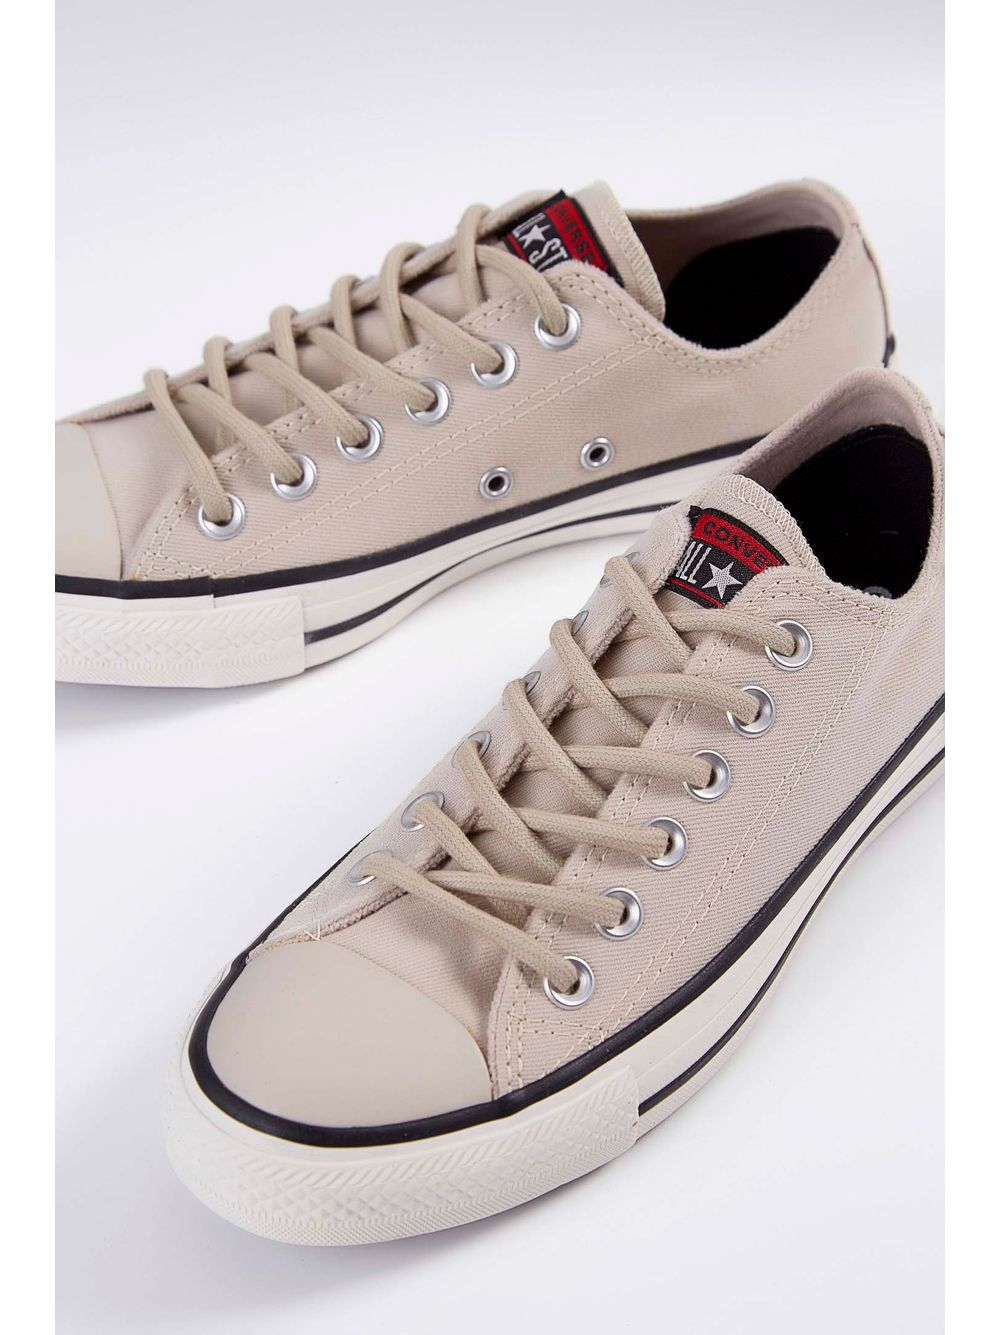 49acd8daf5f Tênis Casual Lona All Star Ct11610003 Converse Bege - pittol